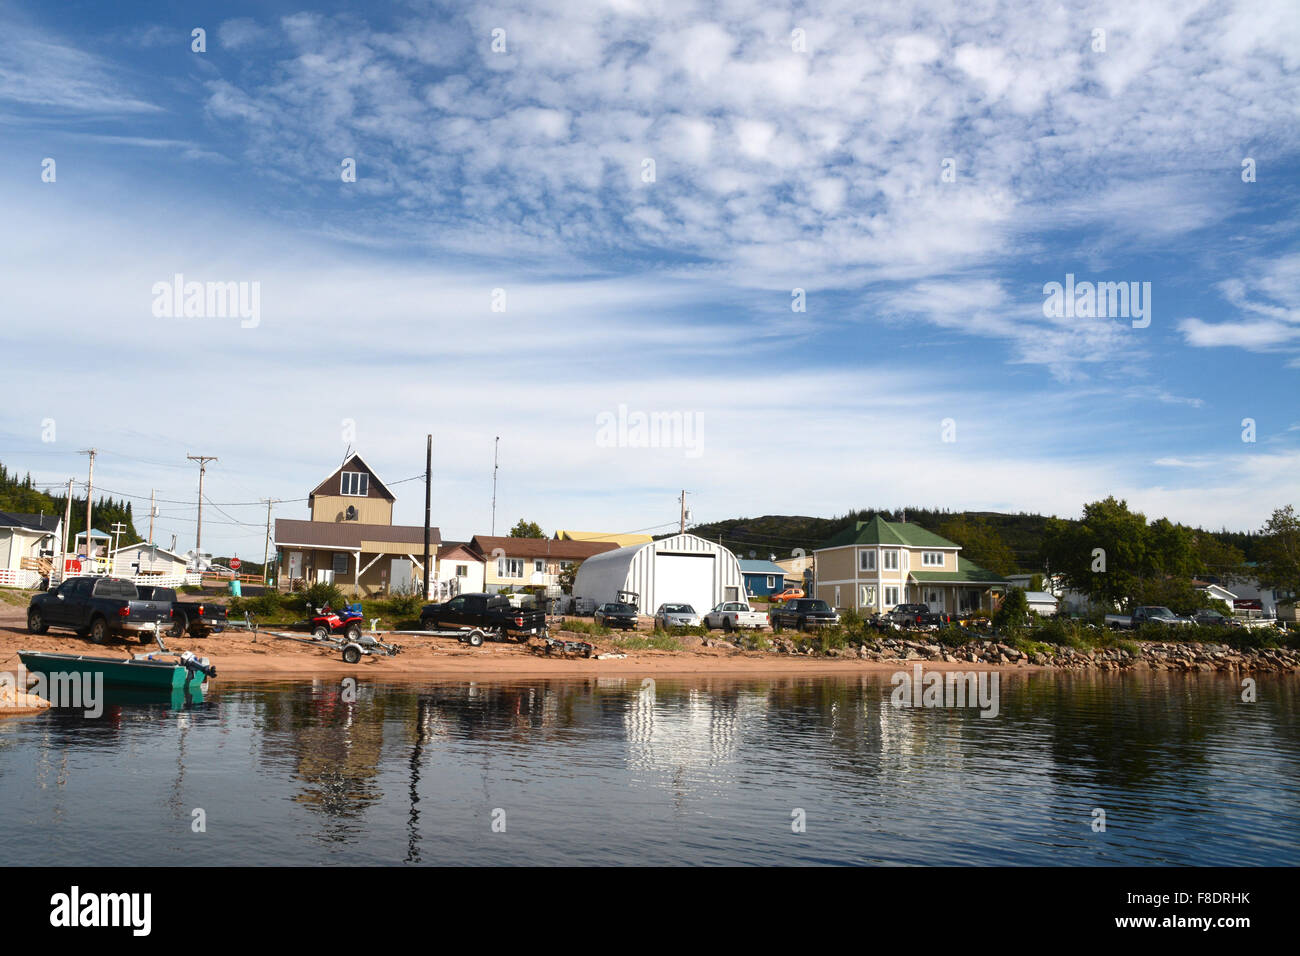 The village of St. Augustine, located on the Gulf of St. Lawrence in the Lower North Shore region of Quebec, Canada. - Stock Image